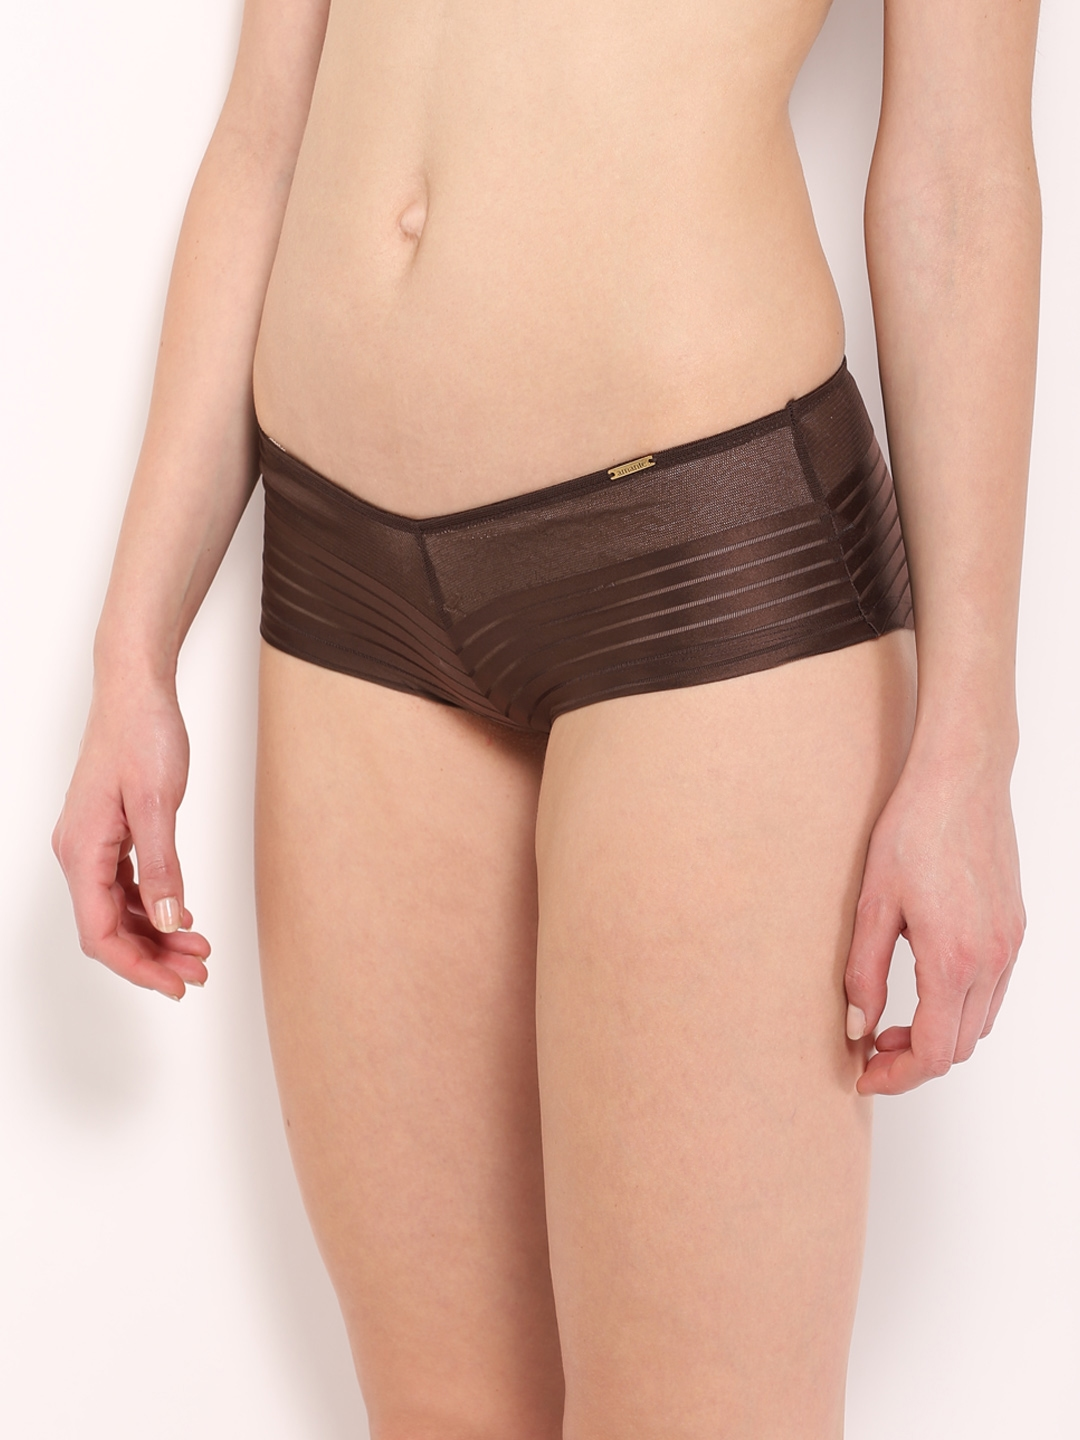 07052e0e3d62 Buy Amante Women Brown Self Striped Boyshorts PGSR02 - Briefs for ...